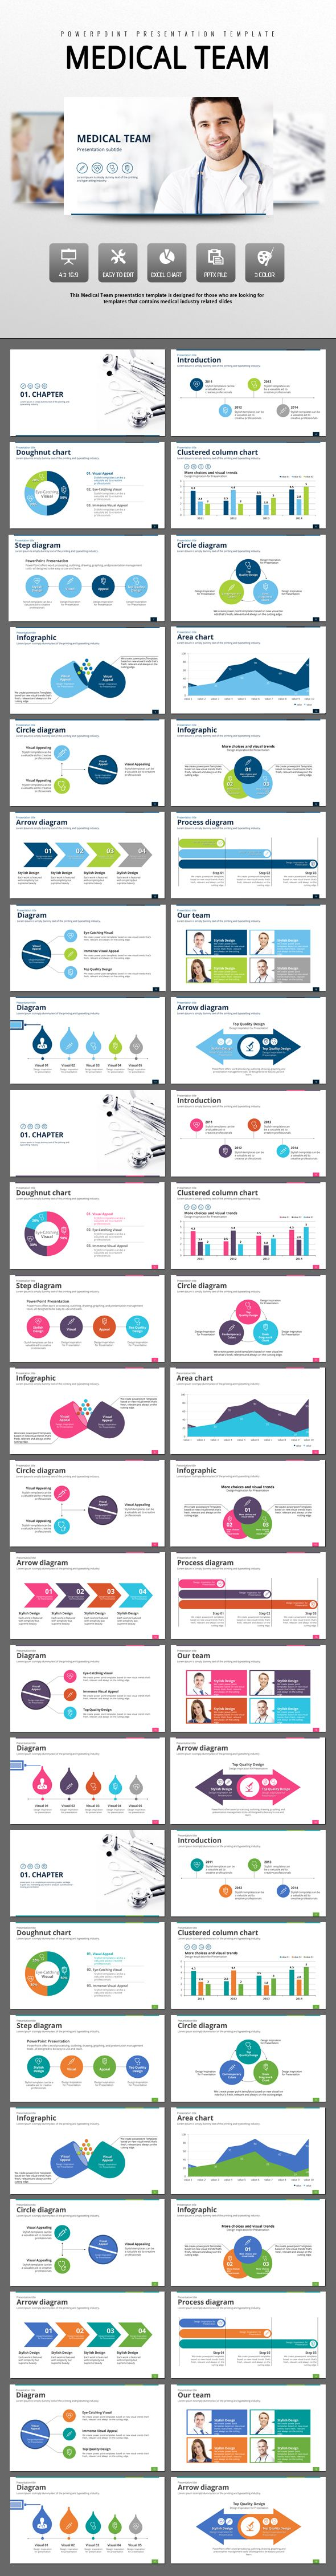 Medical Team PowerPoint Templates Powerpoint Template - Best of powerpoint medical template design